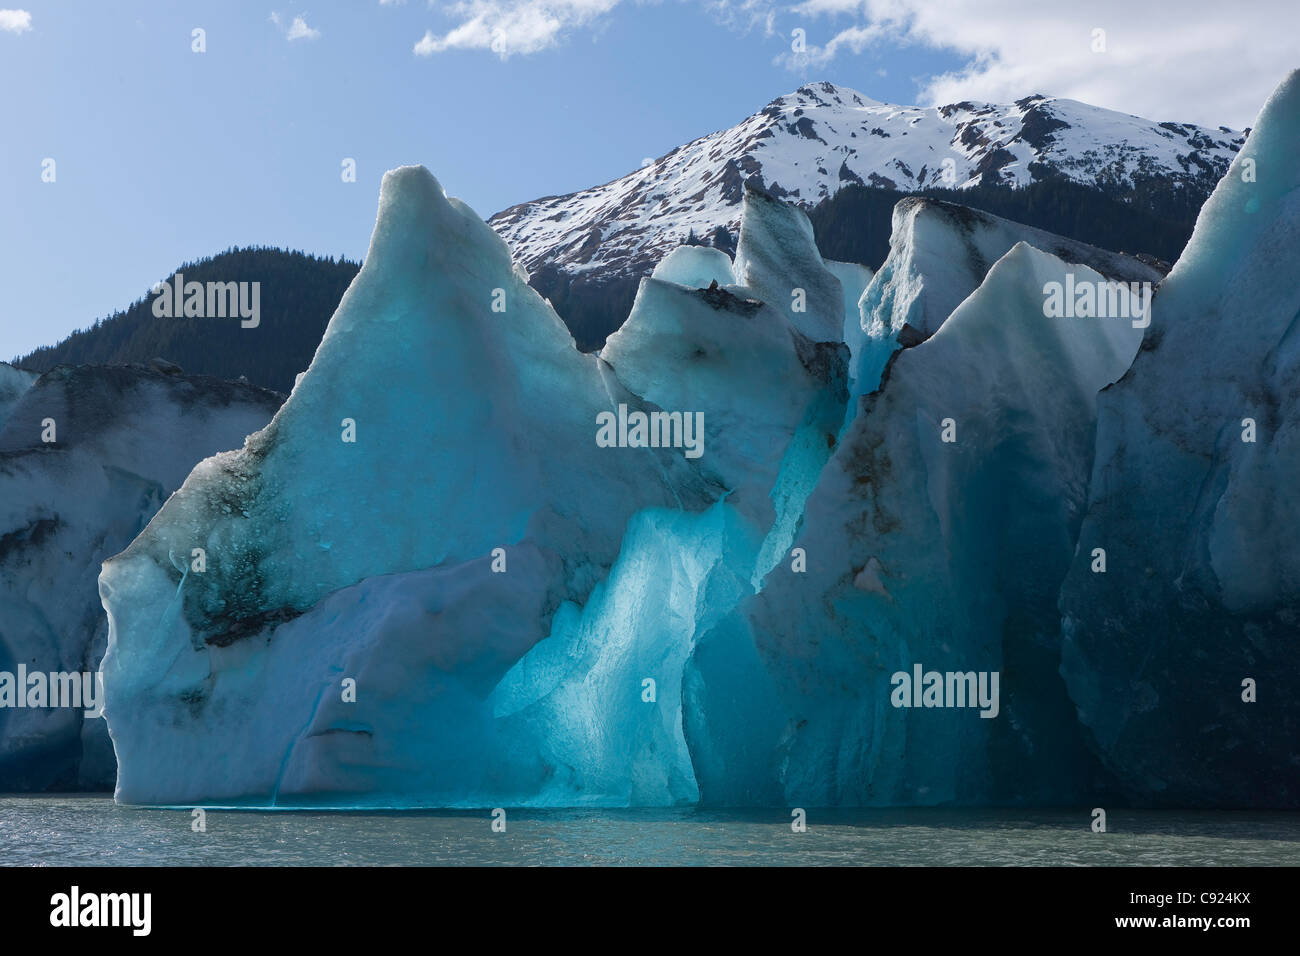 Sun shines through the face or terminus of Mendenhall Glacier on Mendenhall Lake in Alaska's Tongass Forest, - Stock Image